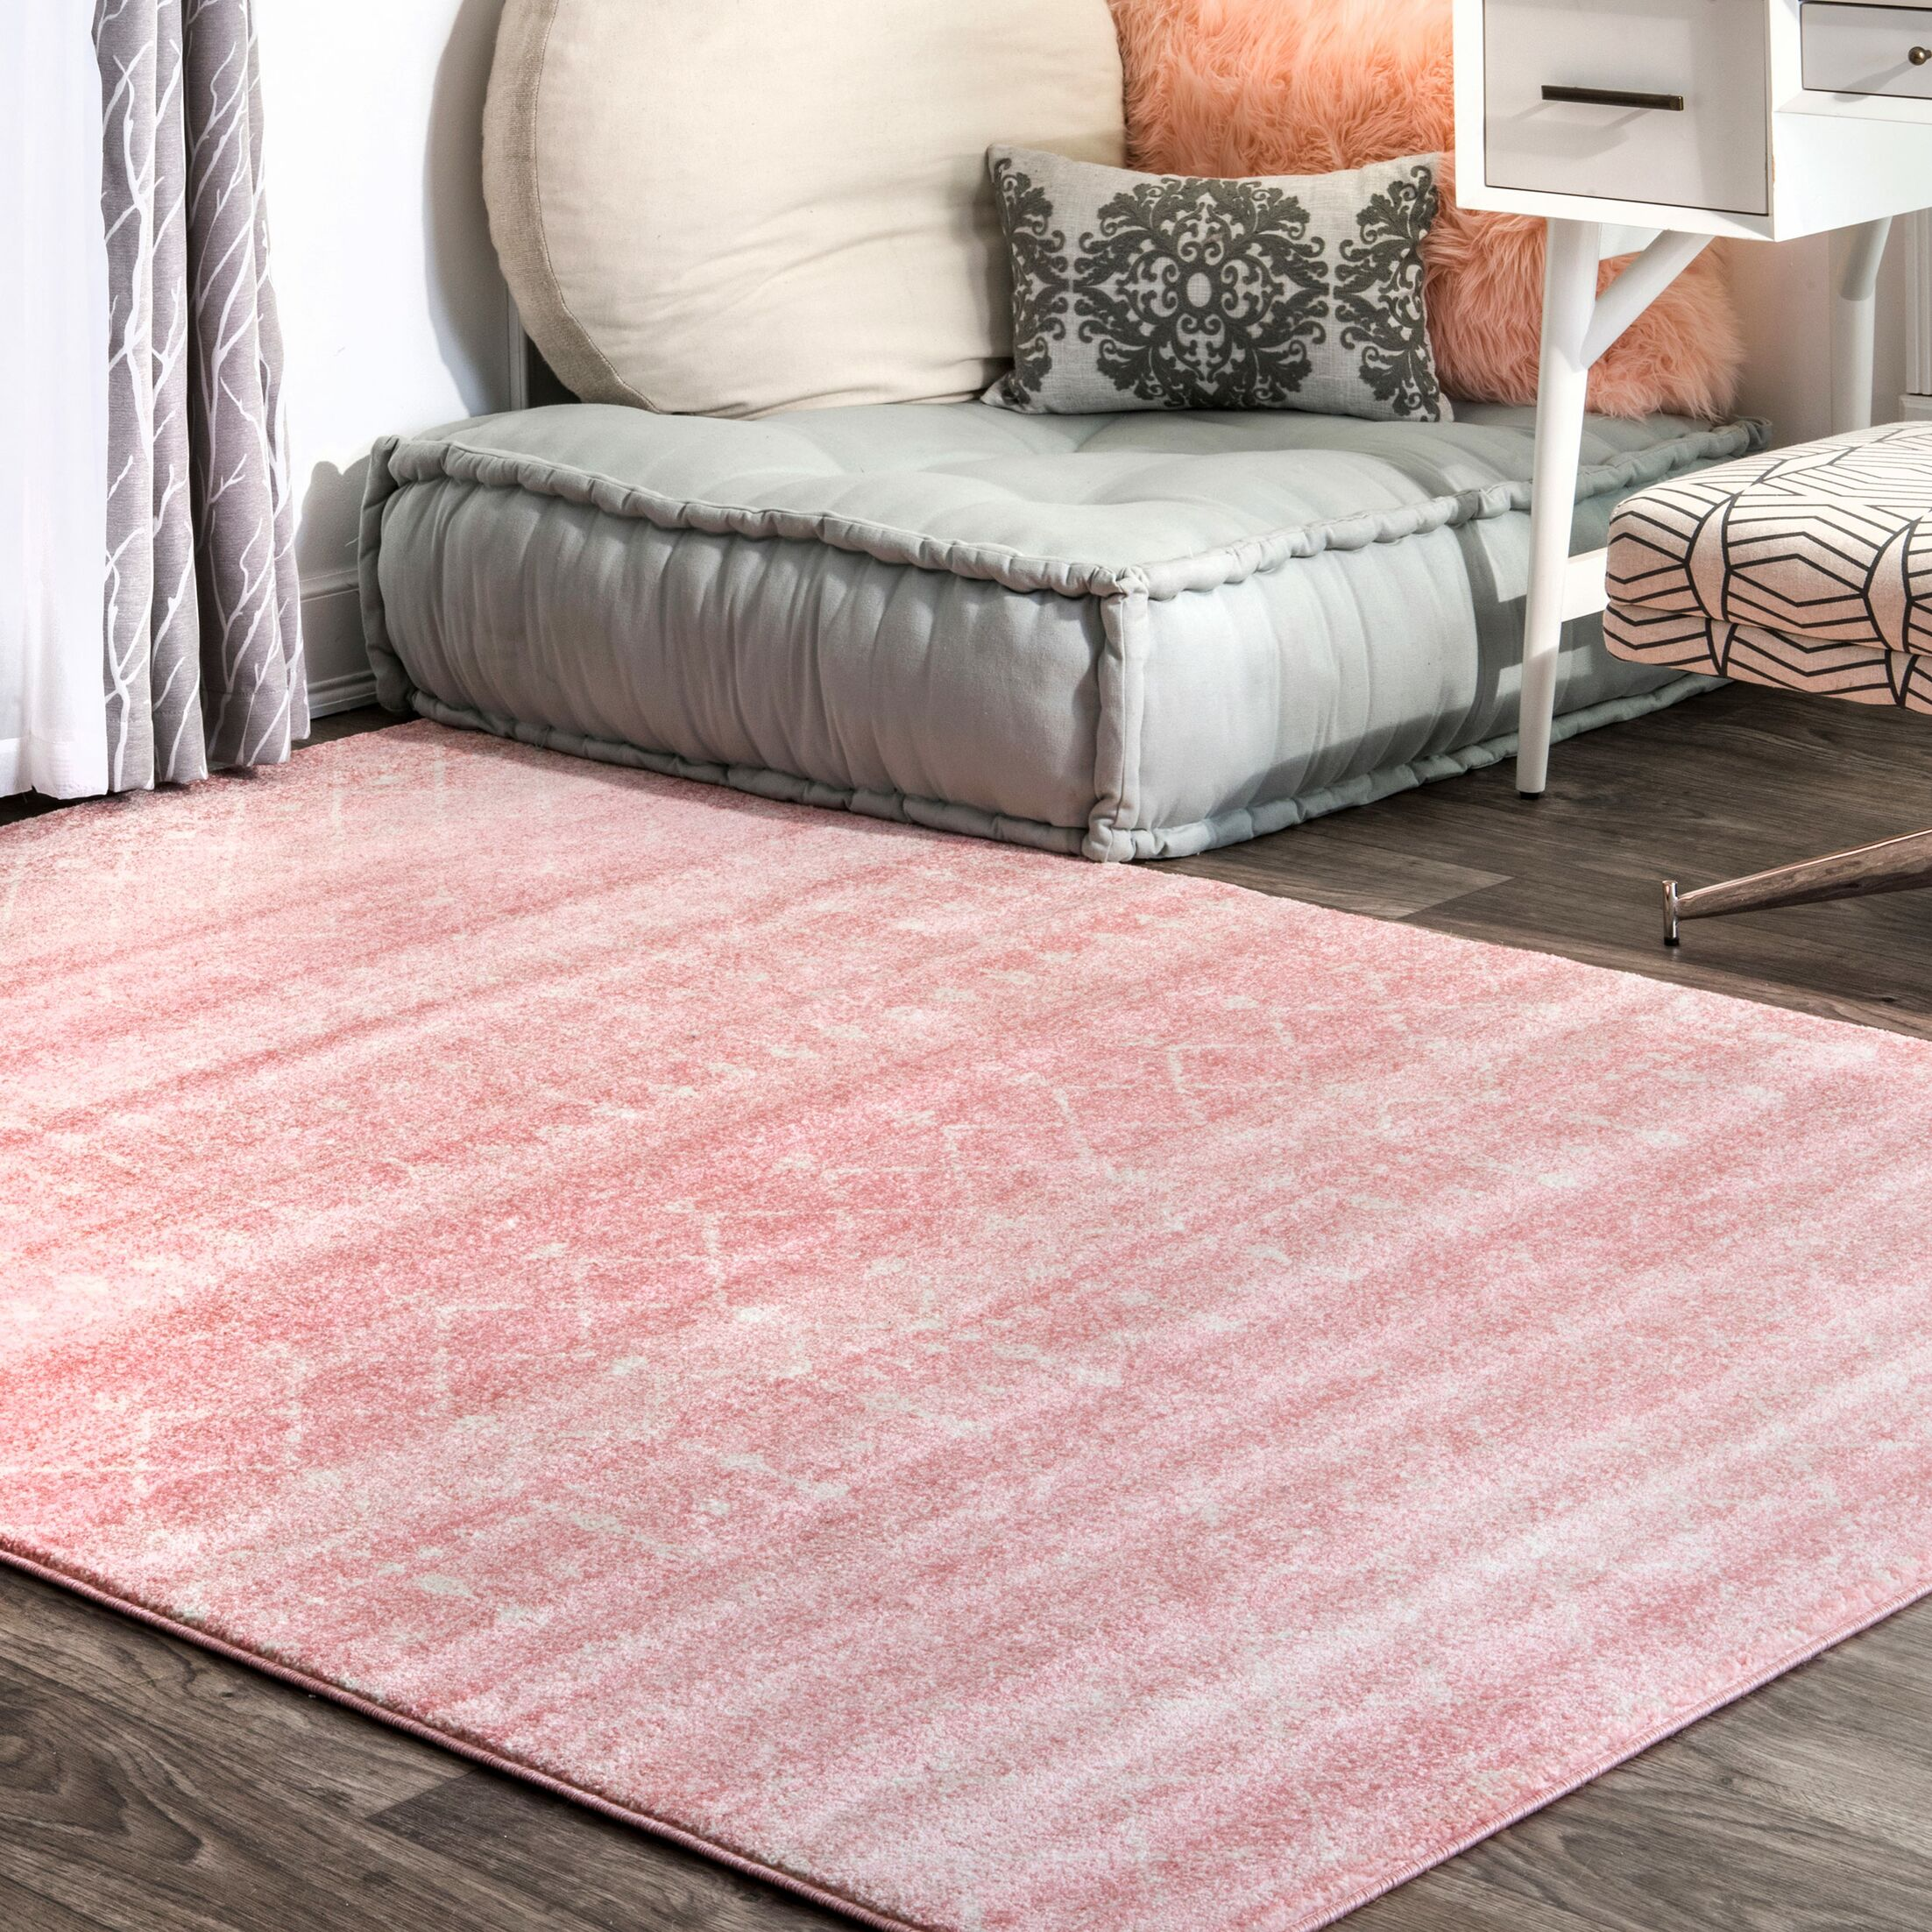 Isamar Pink Area Rug Rug Size: Rectangle 8' x 10'